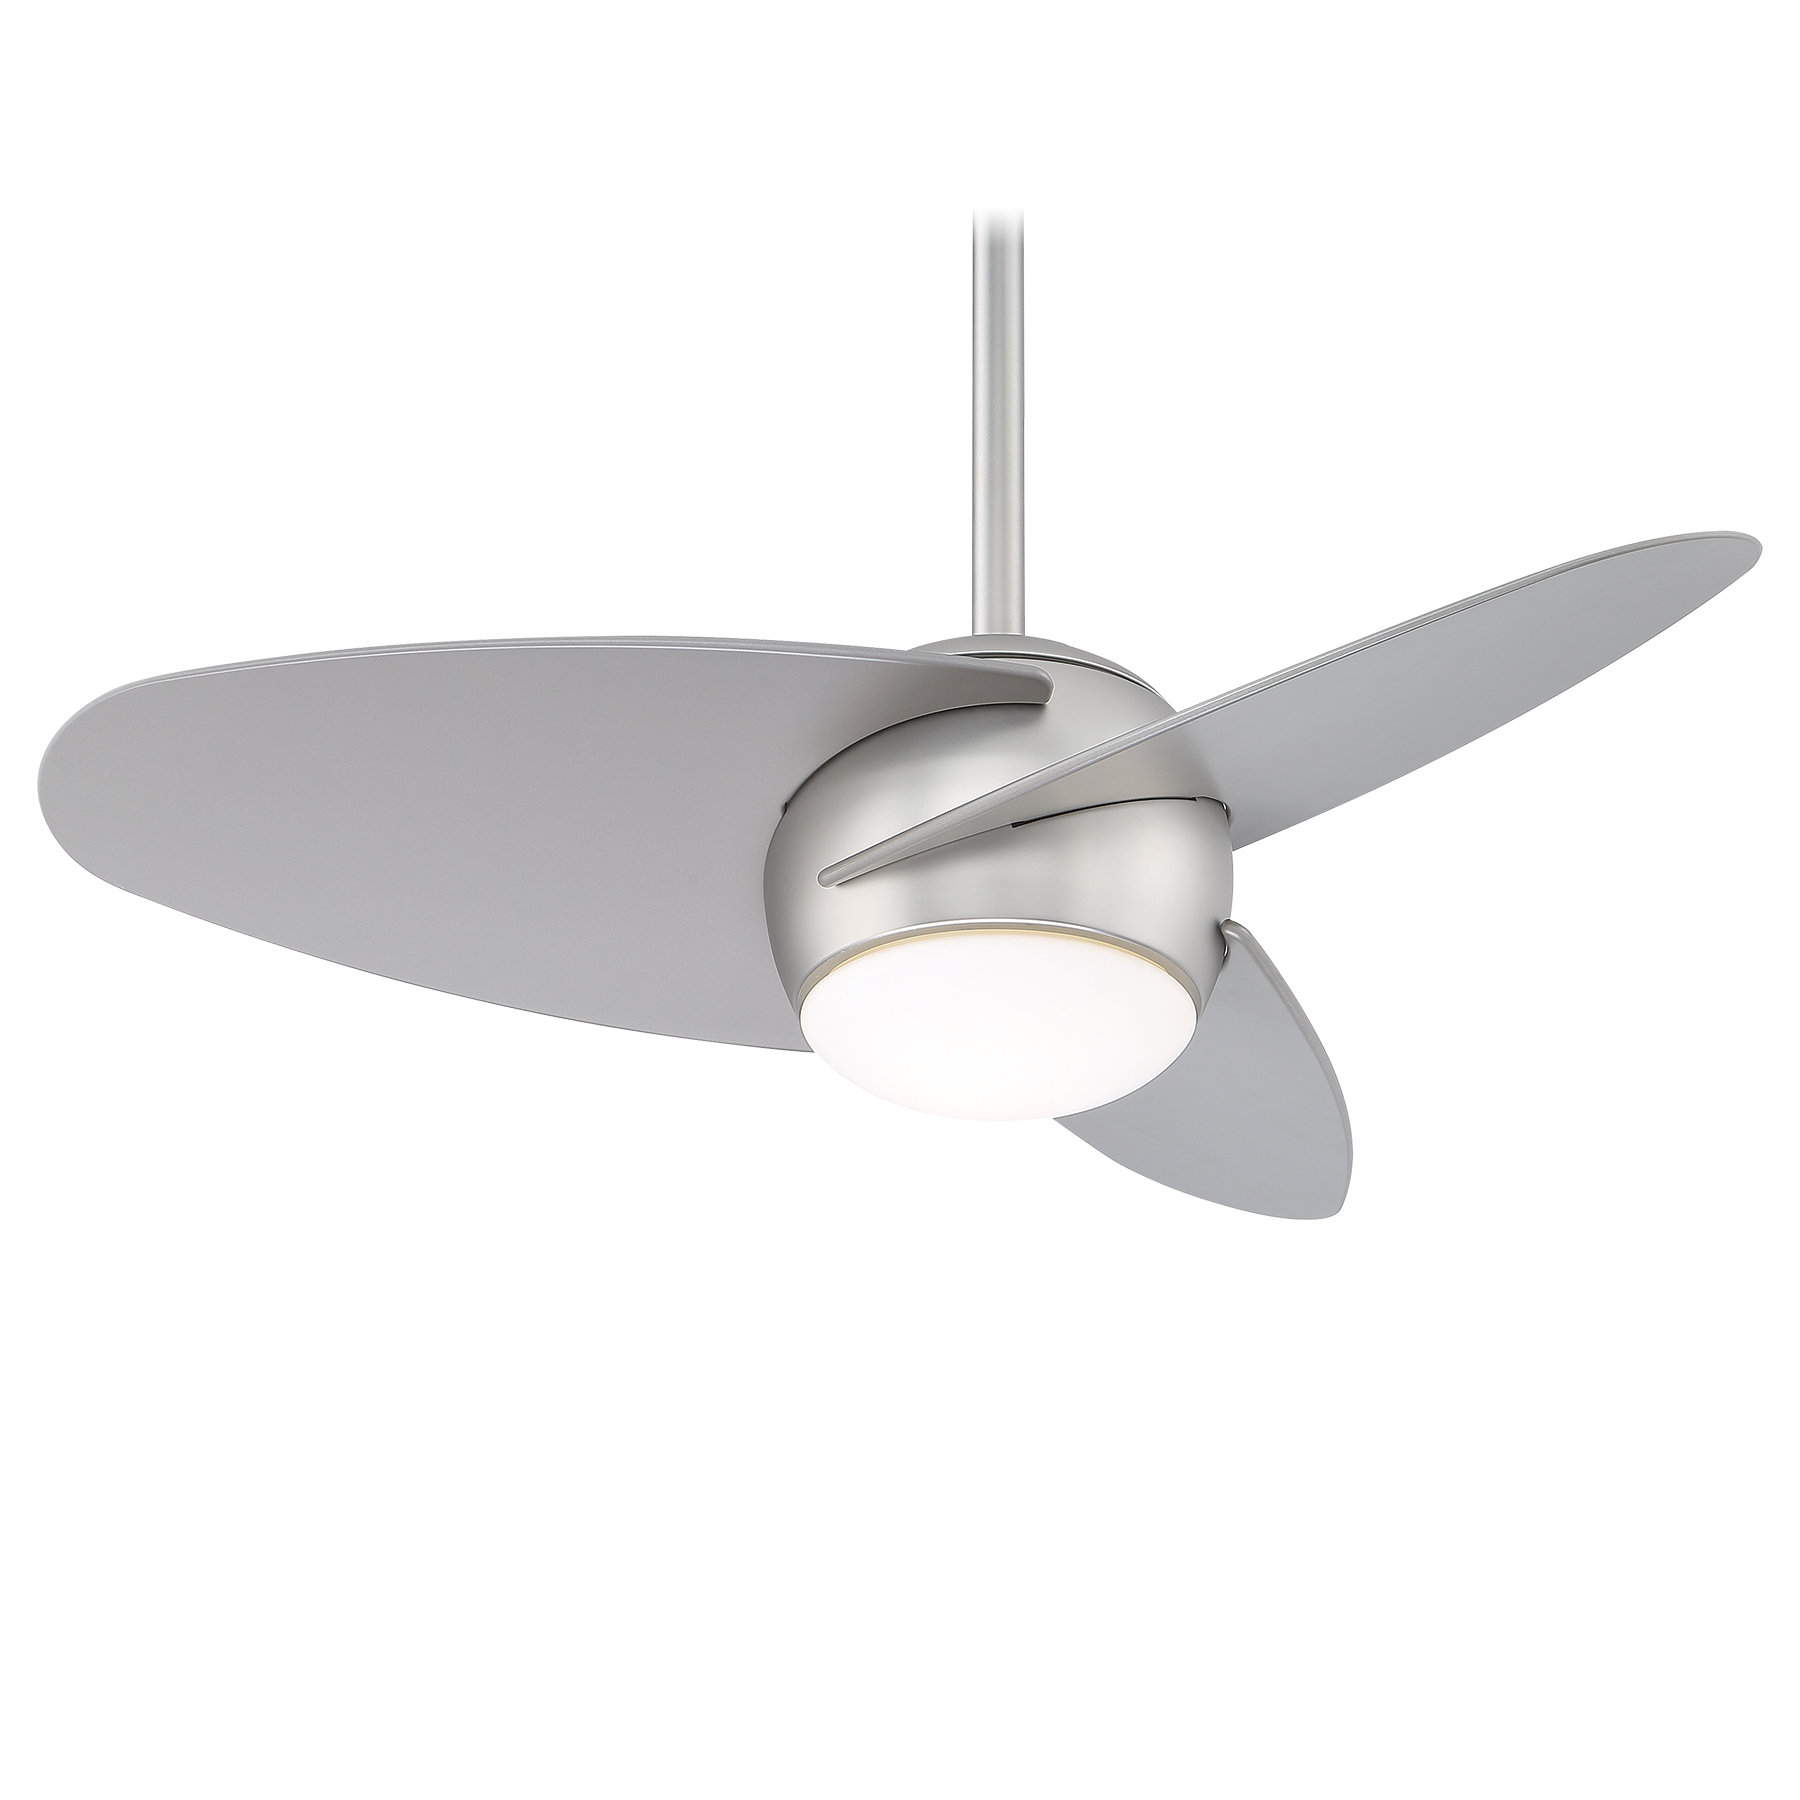 """Famous 36"""" Slant 3 Blade Led Ceiling Fan With Concept Ii 3 Blade Led Ceiling Fans With Remote (View 10 of 20)"""